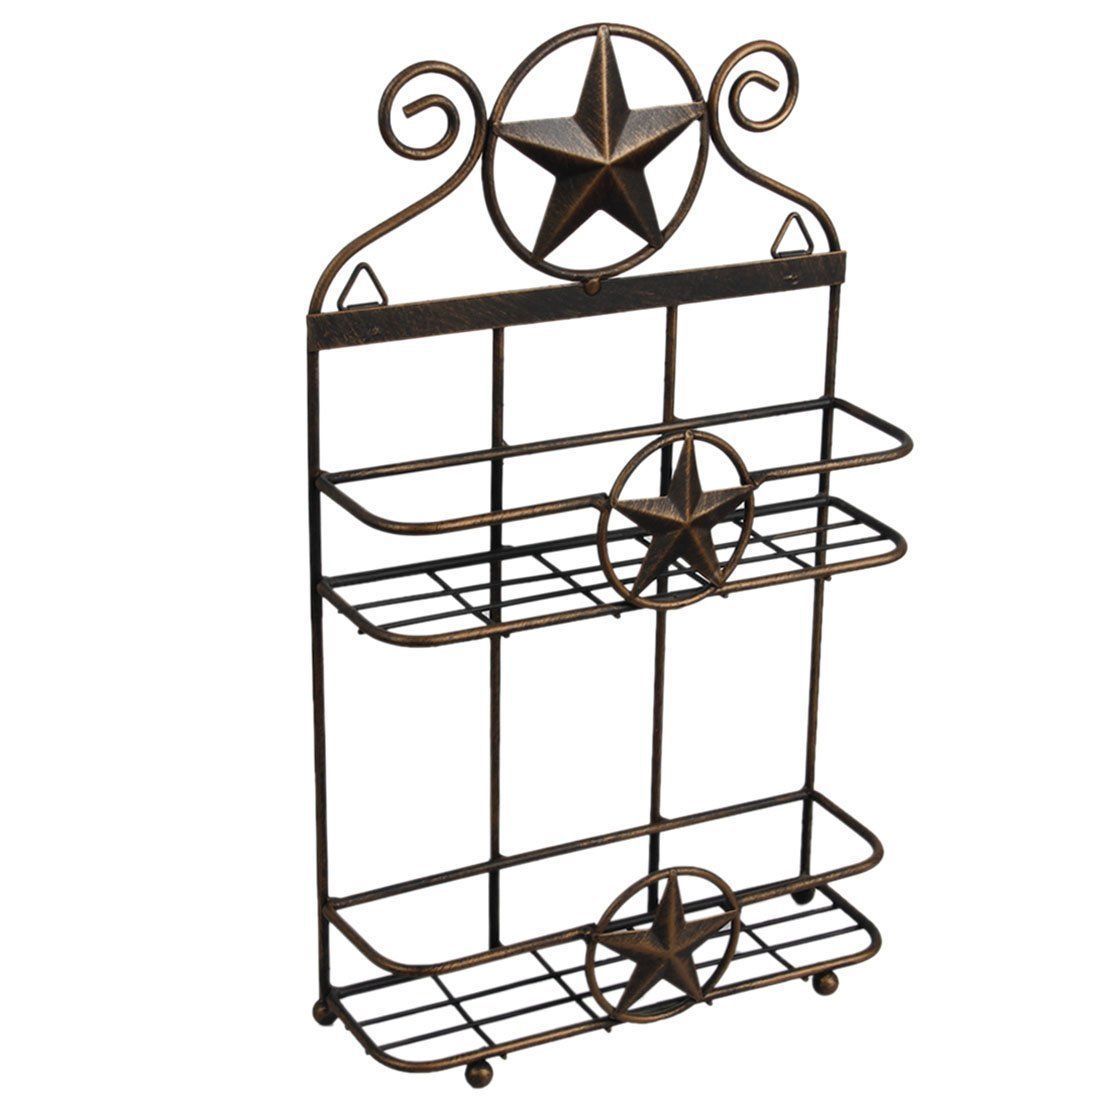 Vintage Metal Texas Decor 2 Tier Shelf Rustic Star Home